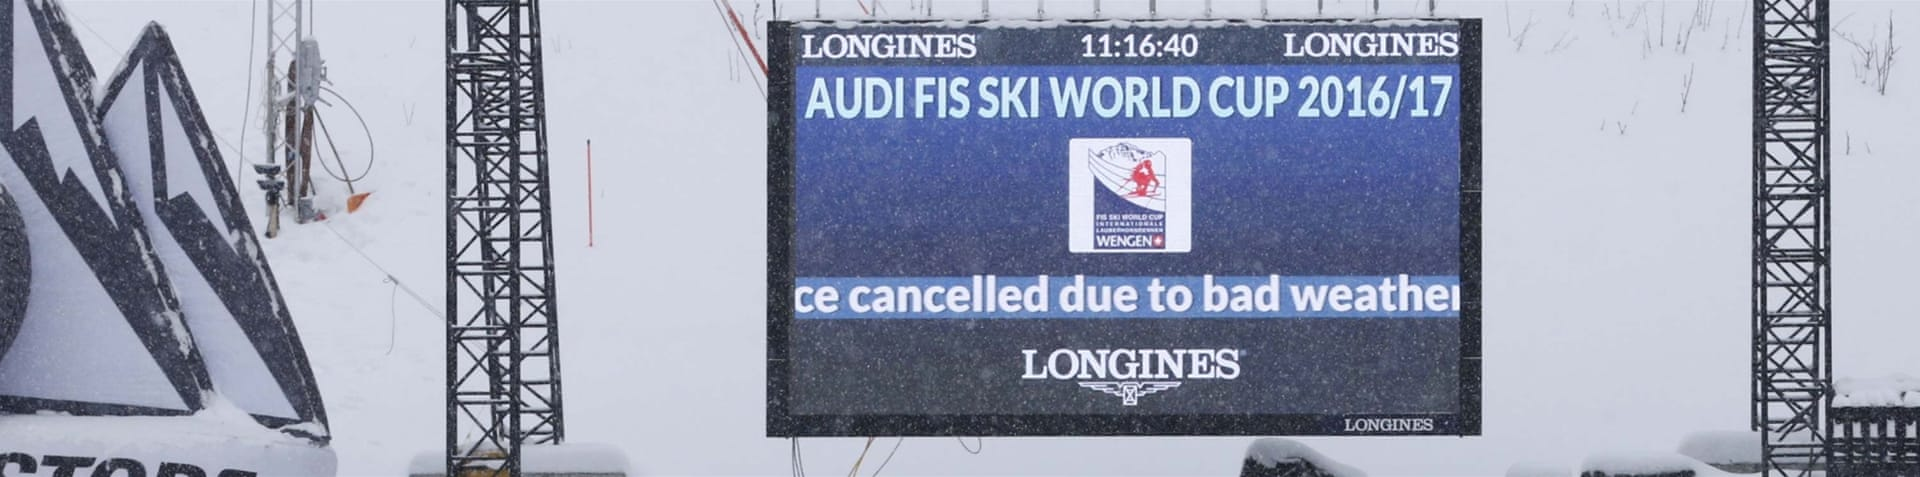 Alpine ski resorts plagued by lack of snow - The Cancellation Follows Concerns About A Lack Of Snow Both At Wengen And Across The